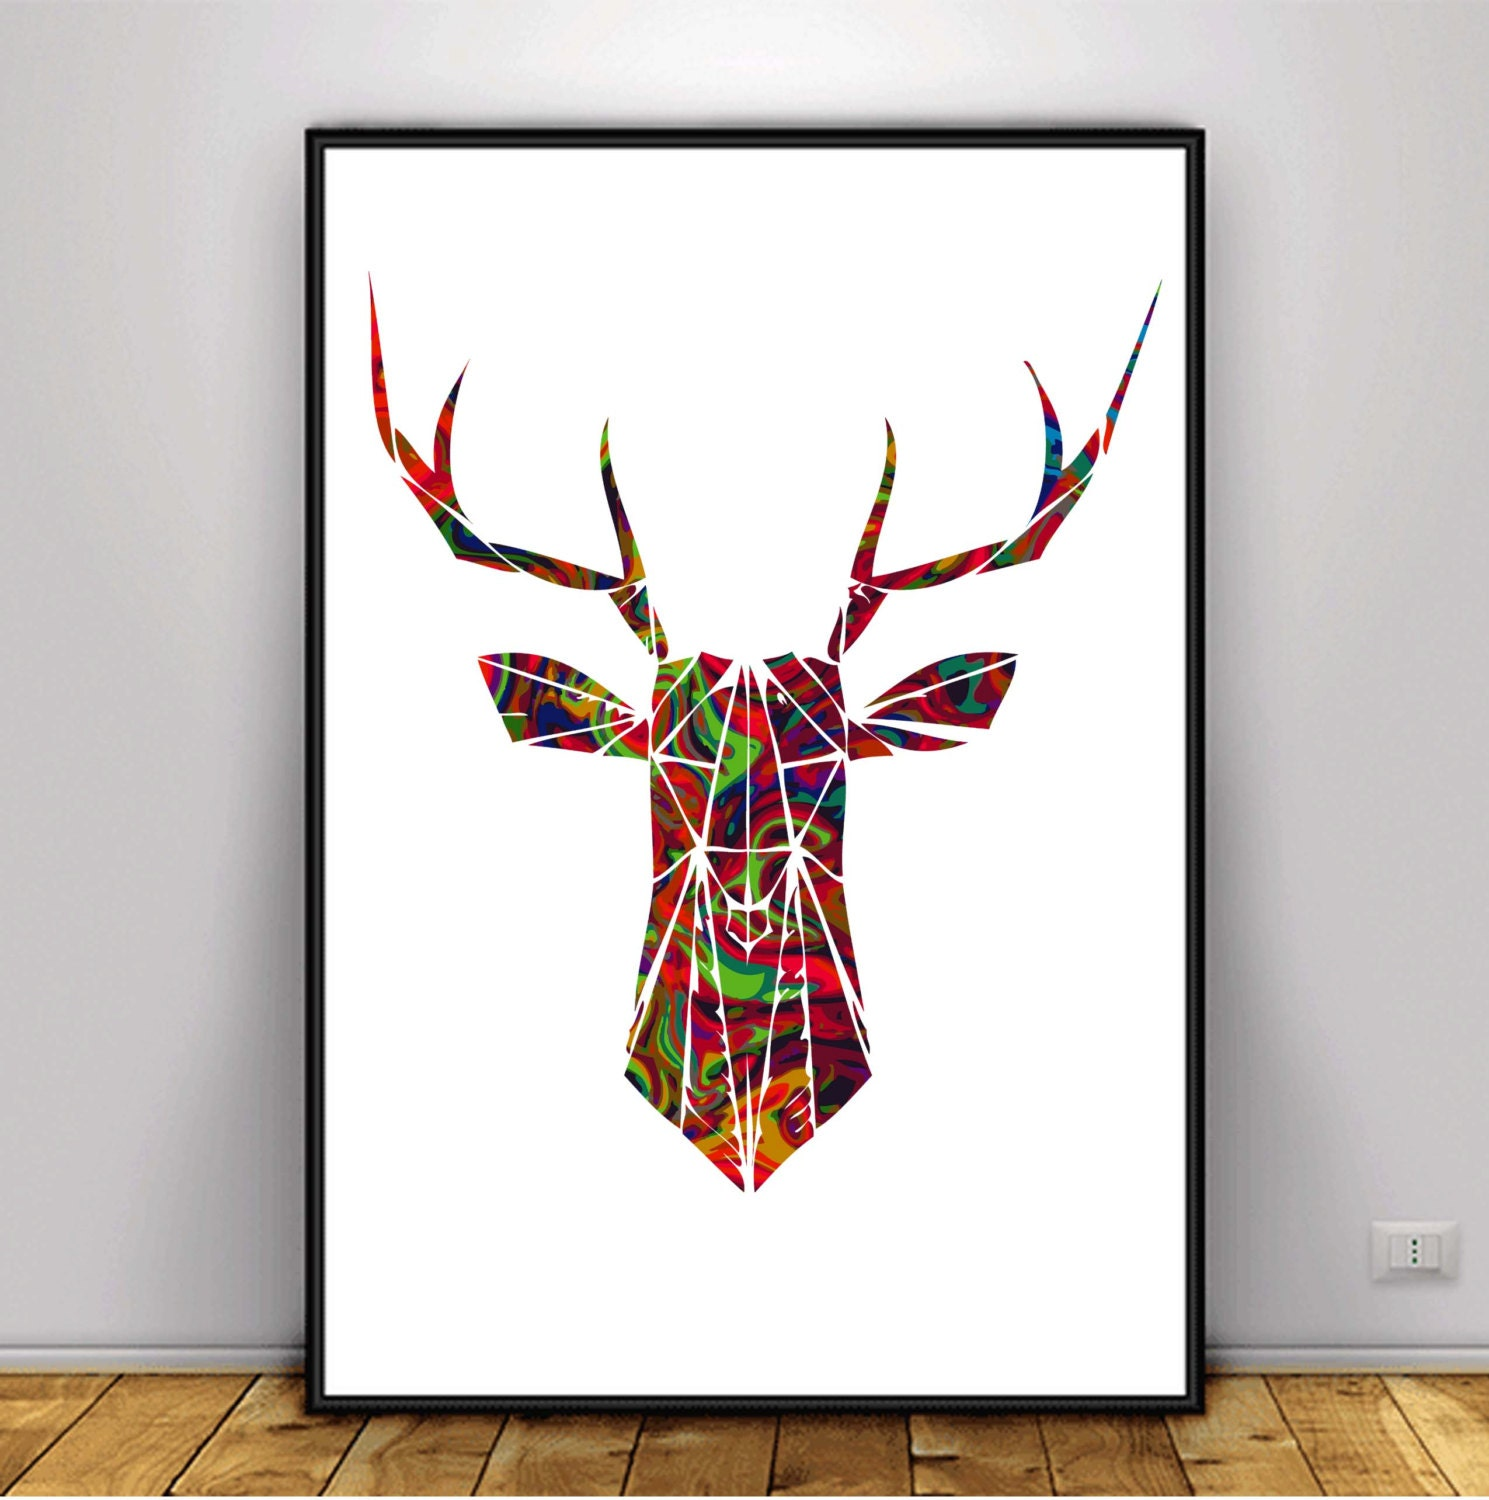 Geometric deer digital art geometric animal art geometric for Cuadros con formas geometricas